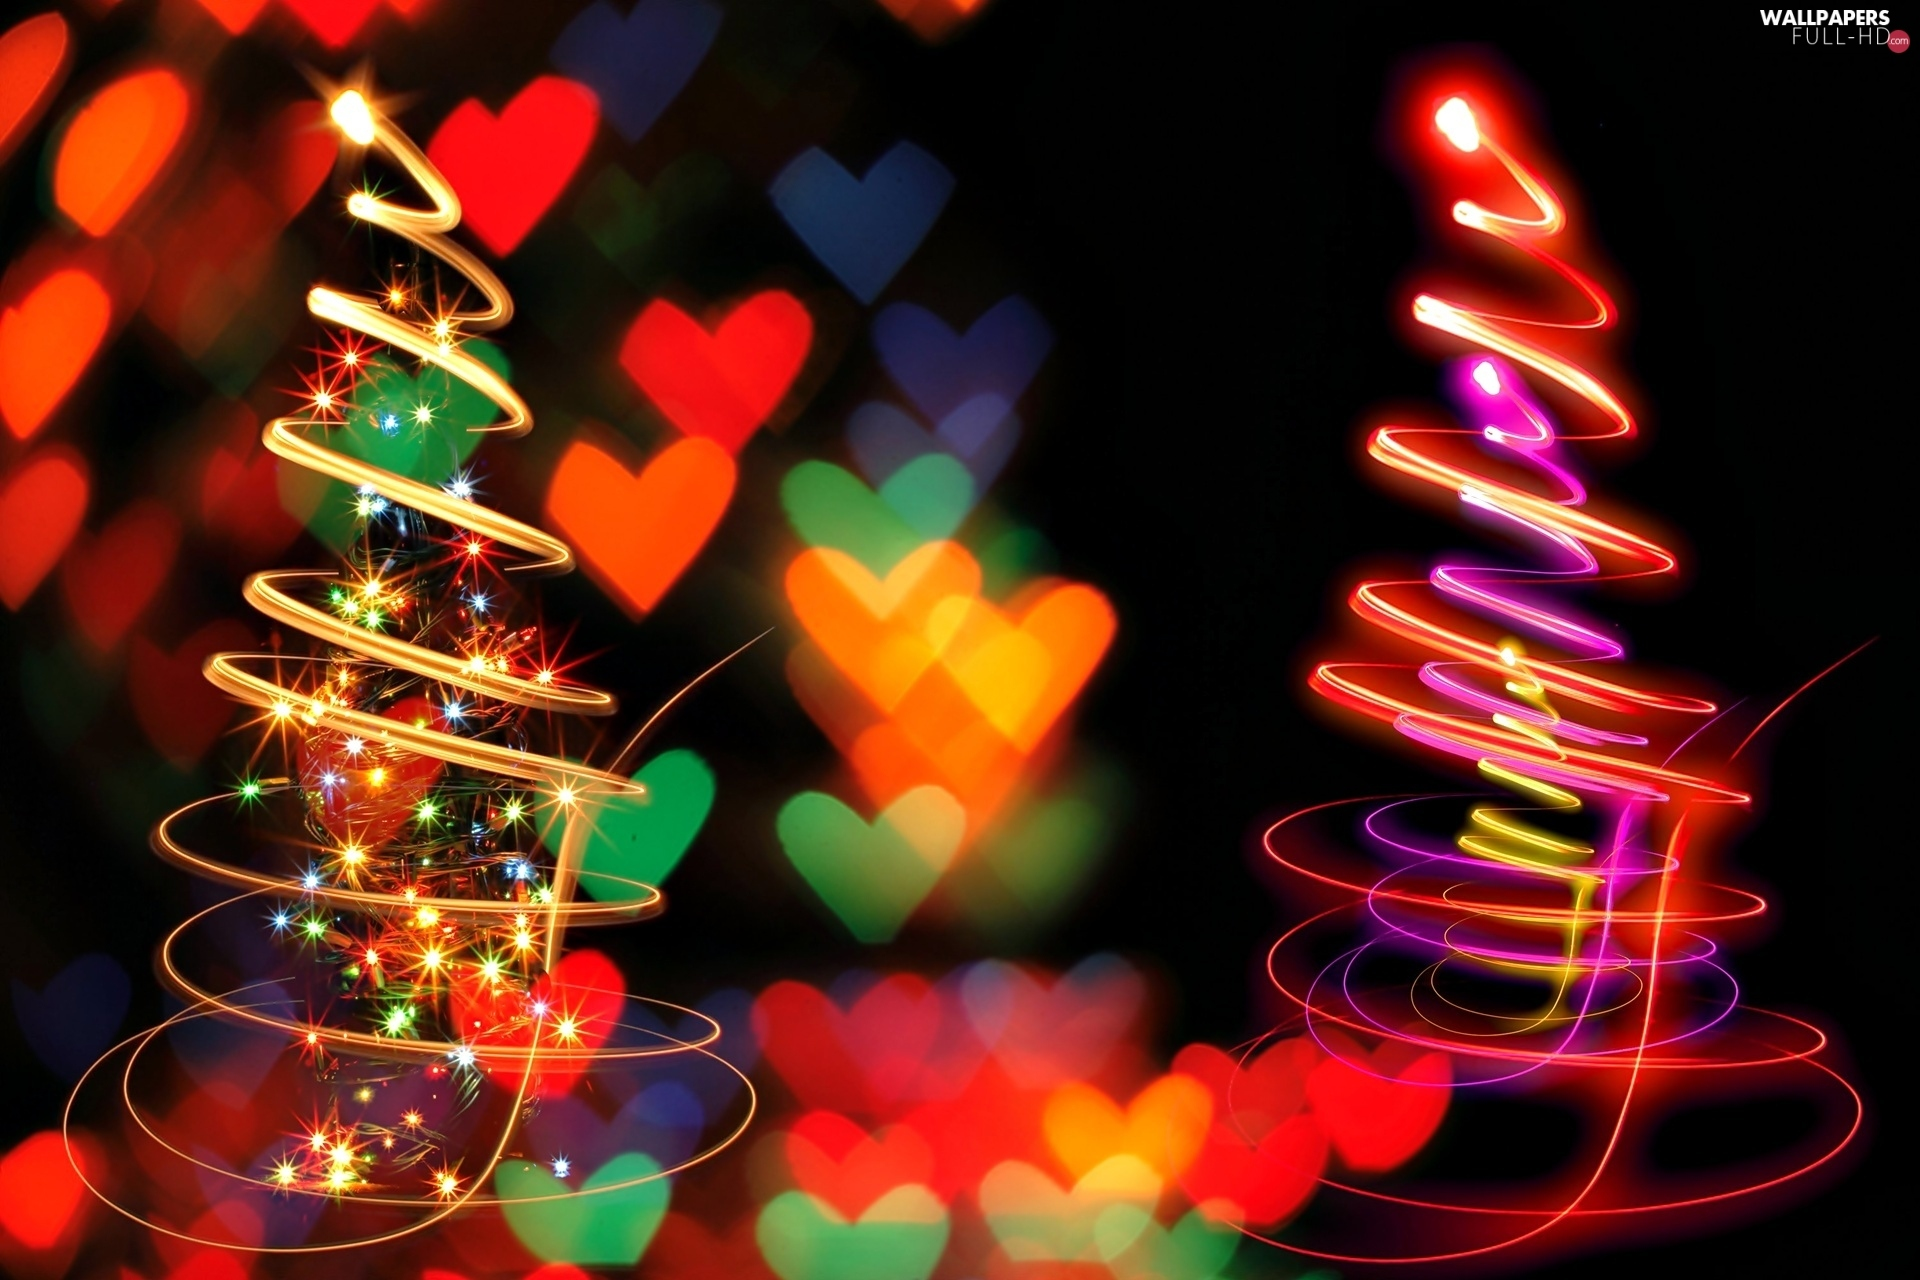 hearts, Stars, abstraction, Christmas